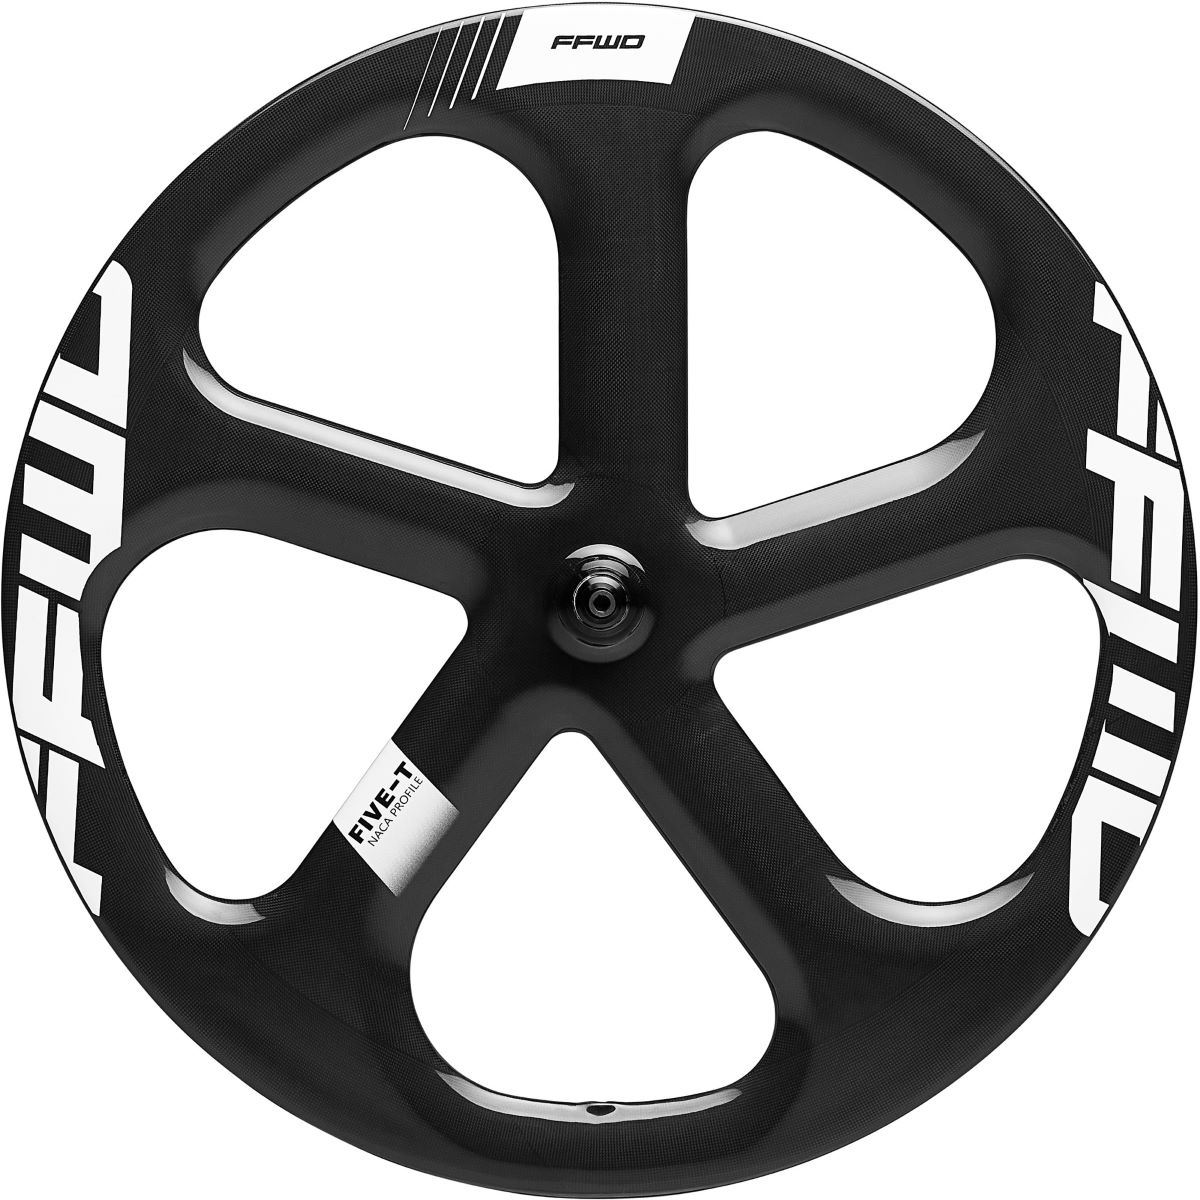 Fast Forward Fast Forward 5 Spoke 1k Tubular Track Front Wheel   Front Wheels